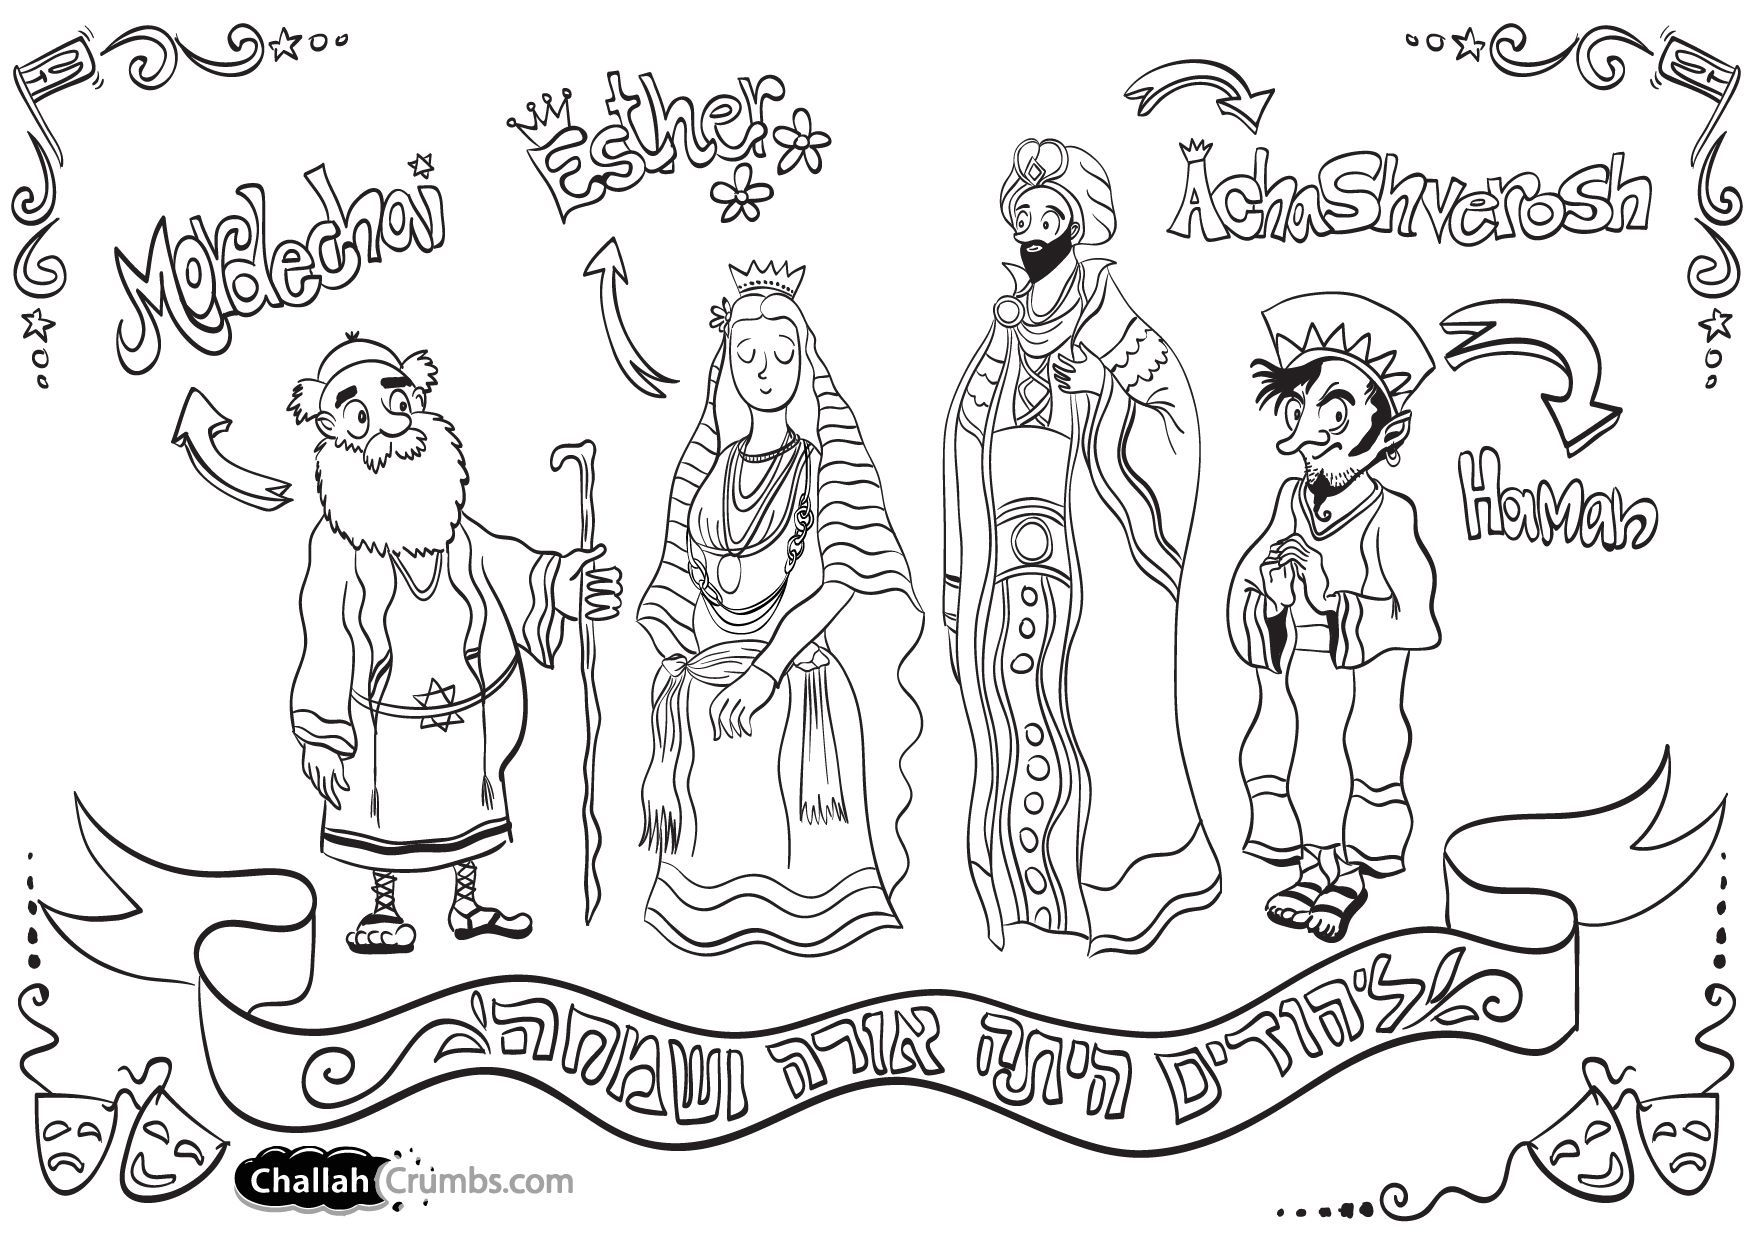 Fabulous Purim Coloring Page Challah Crumbs Coloring Pages Esther Bible Bible Coloring Pages Coloring Pages Bible Coloring Pages Esther Bible